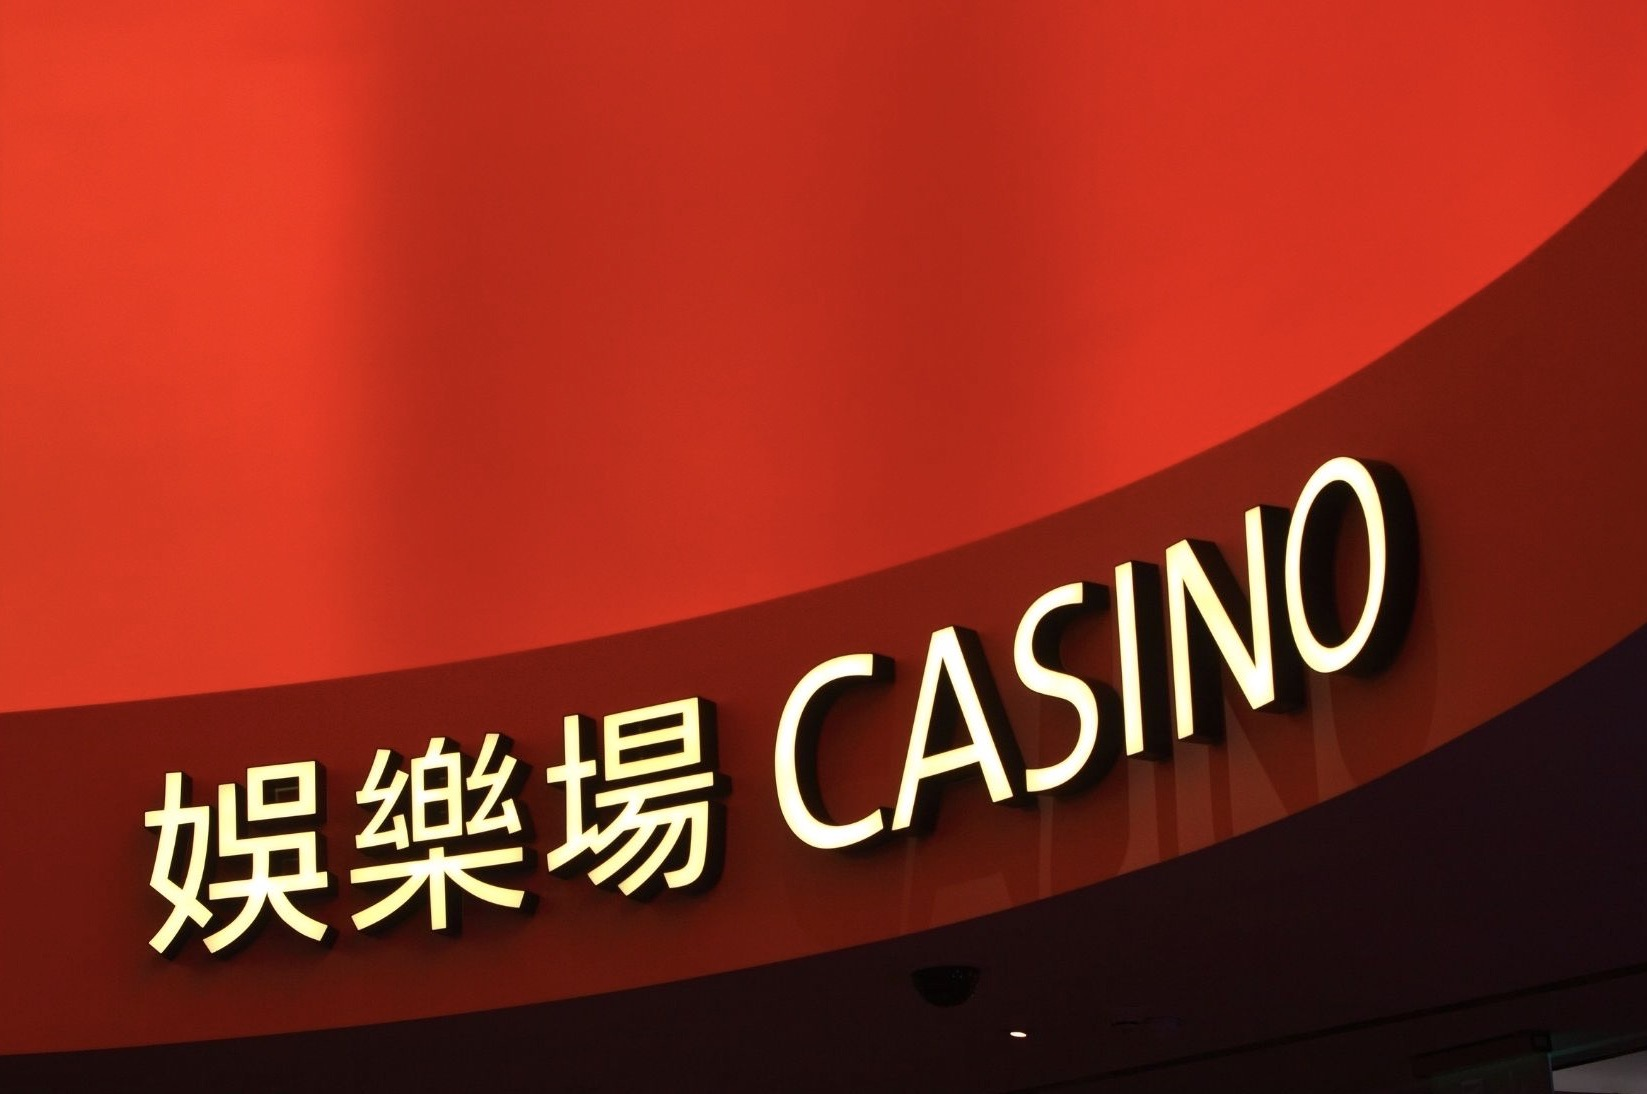 Chinese casinos in Africa